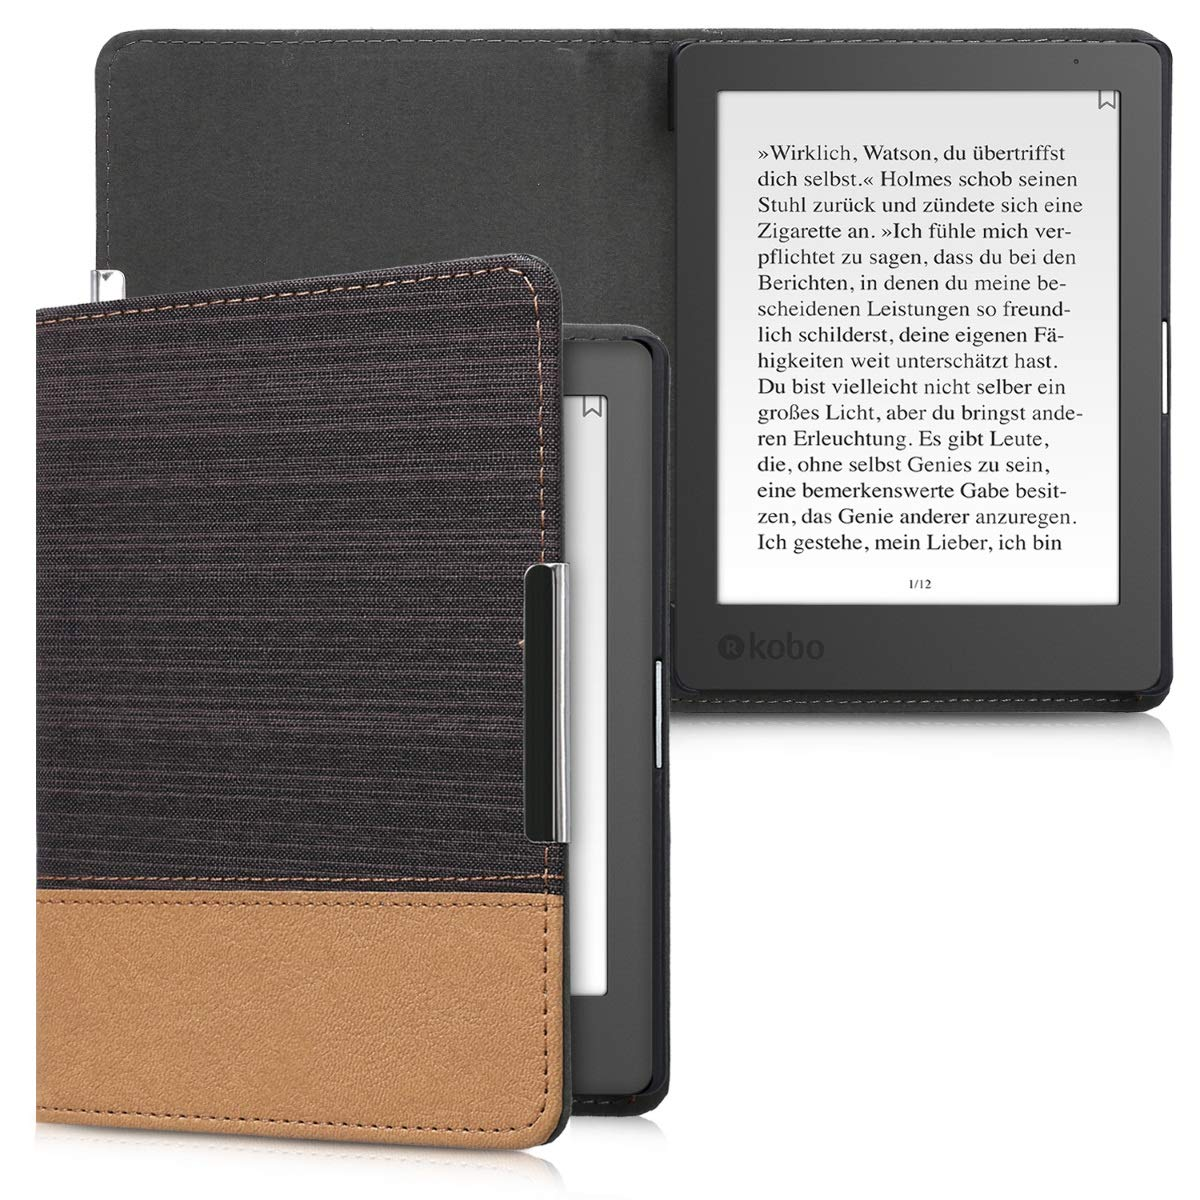 kwmobile Flip cover case for Kobo Aura Edition 1 - imitation leather foldable case in black KW-Commerce 24410.01_m000271